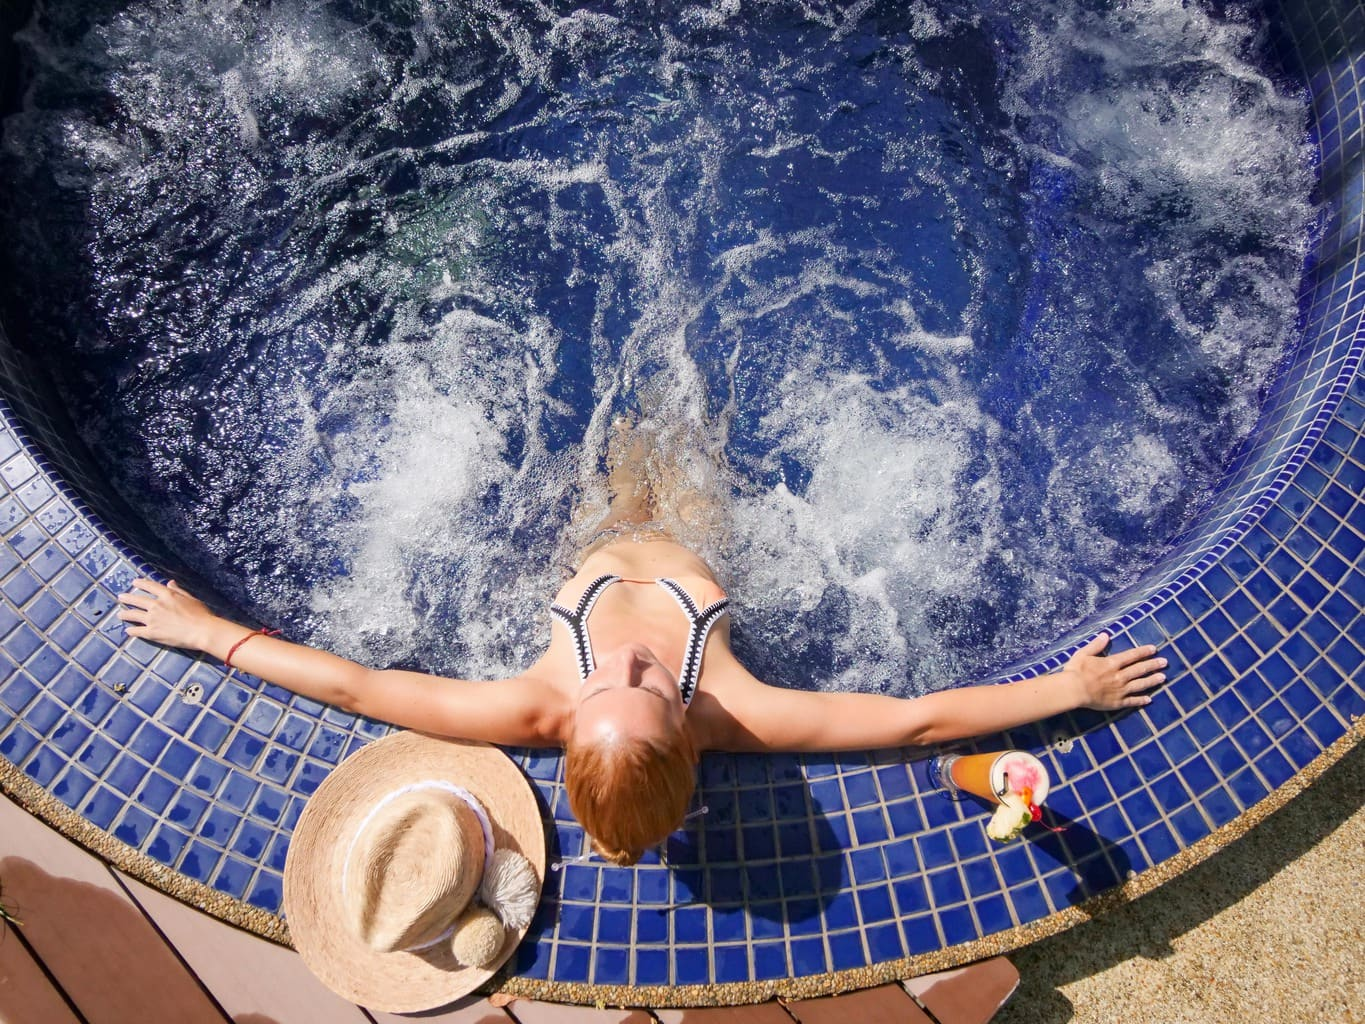 Chilling in the jacuzzi